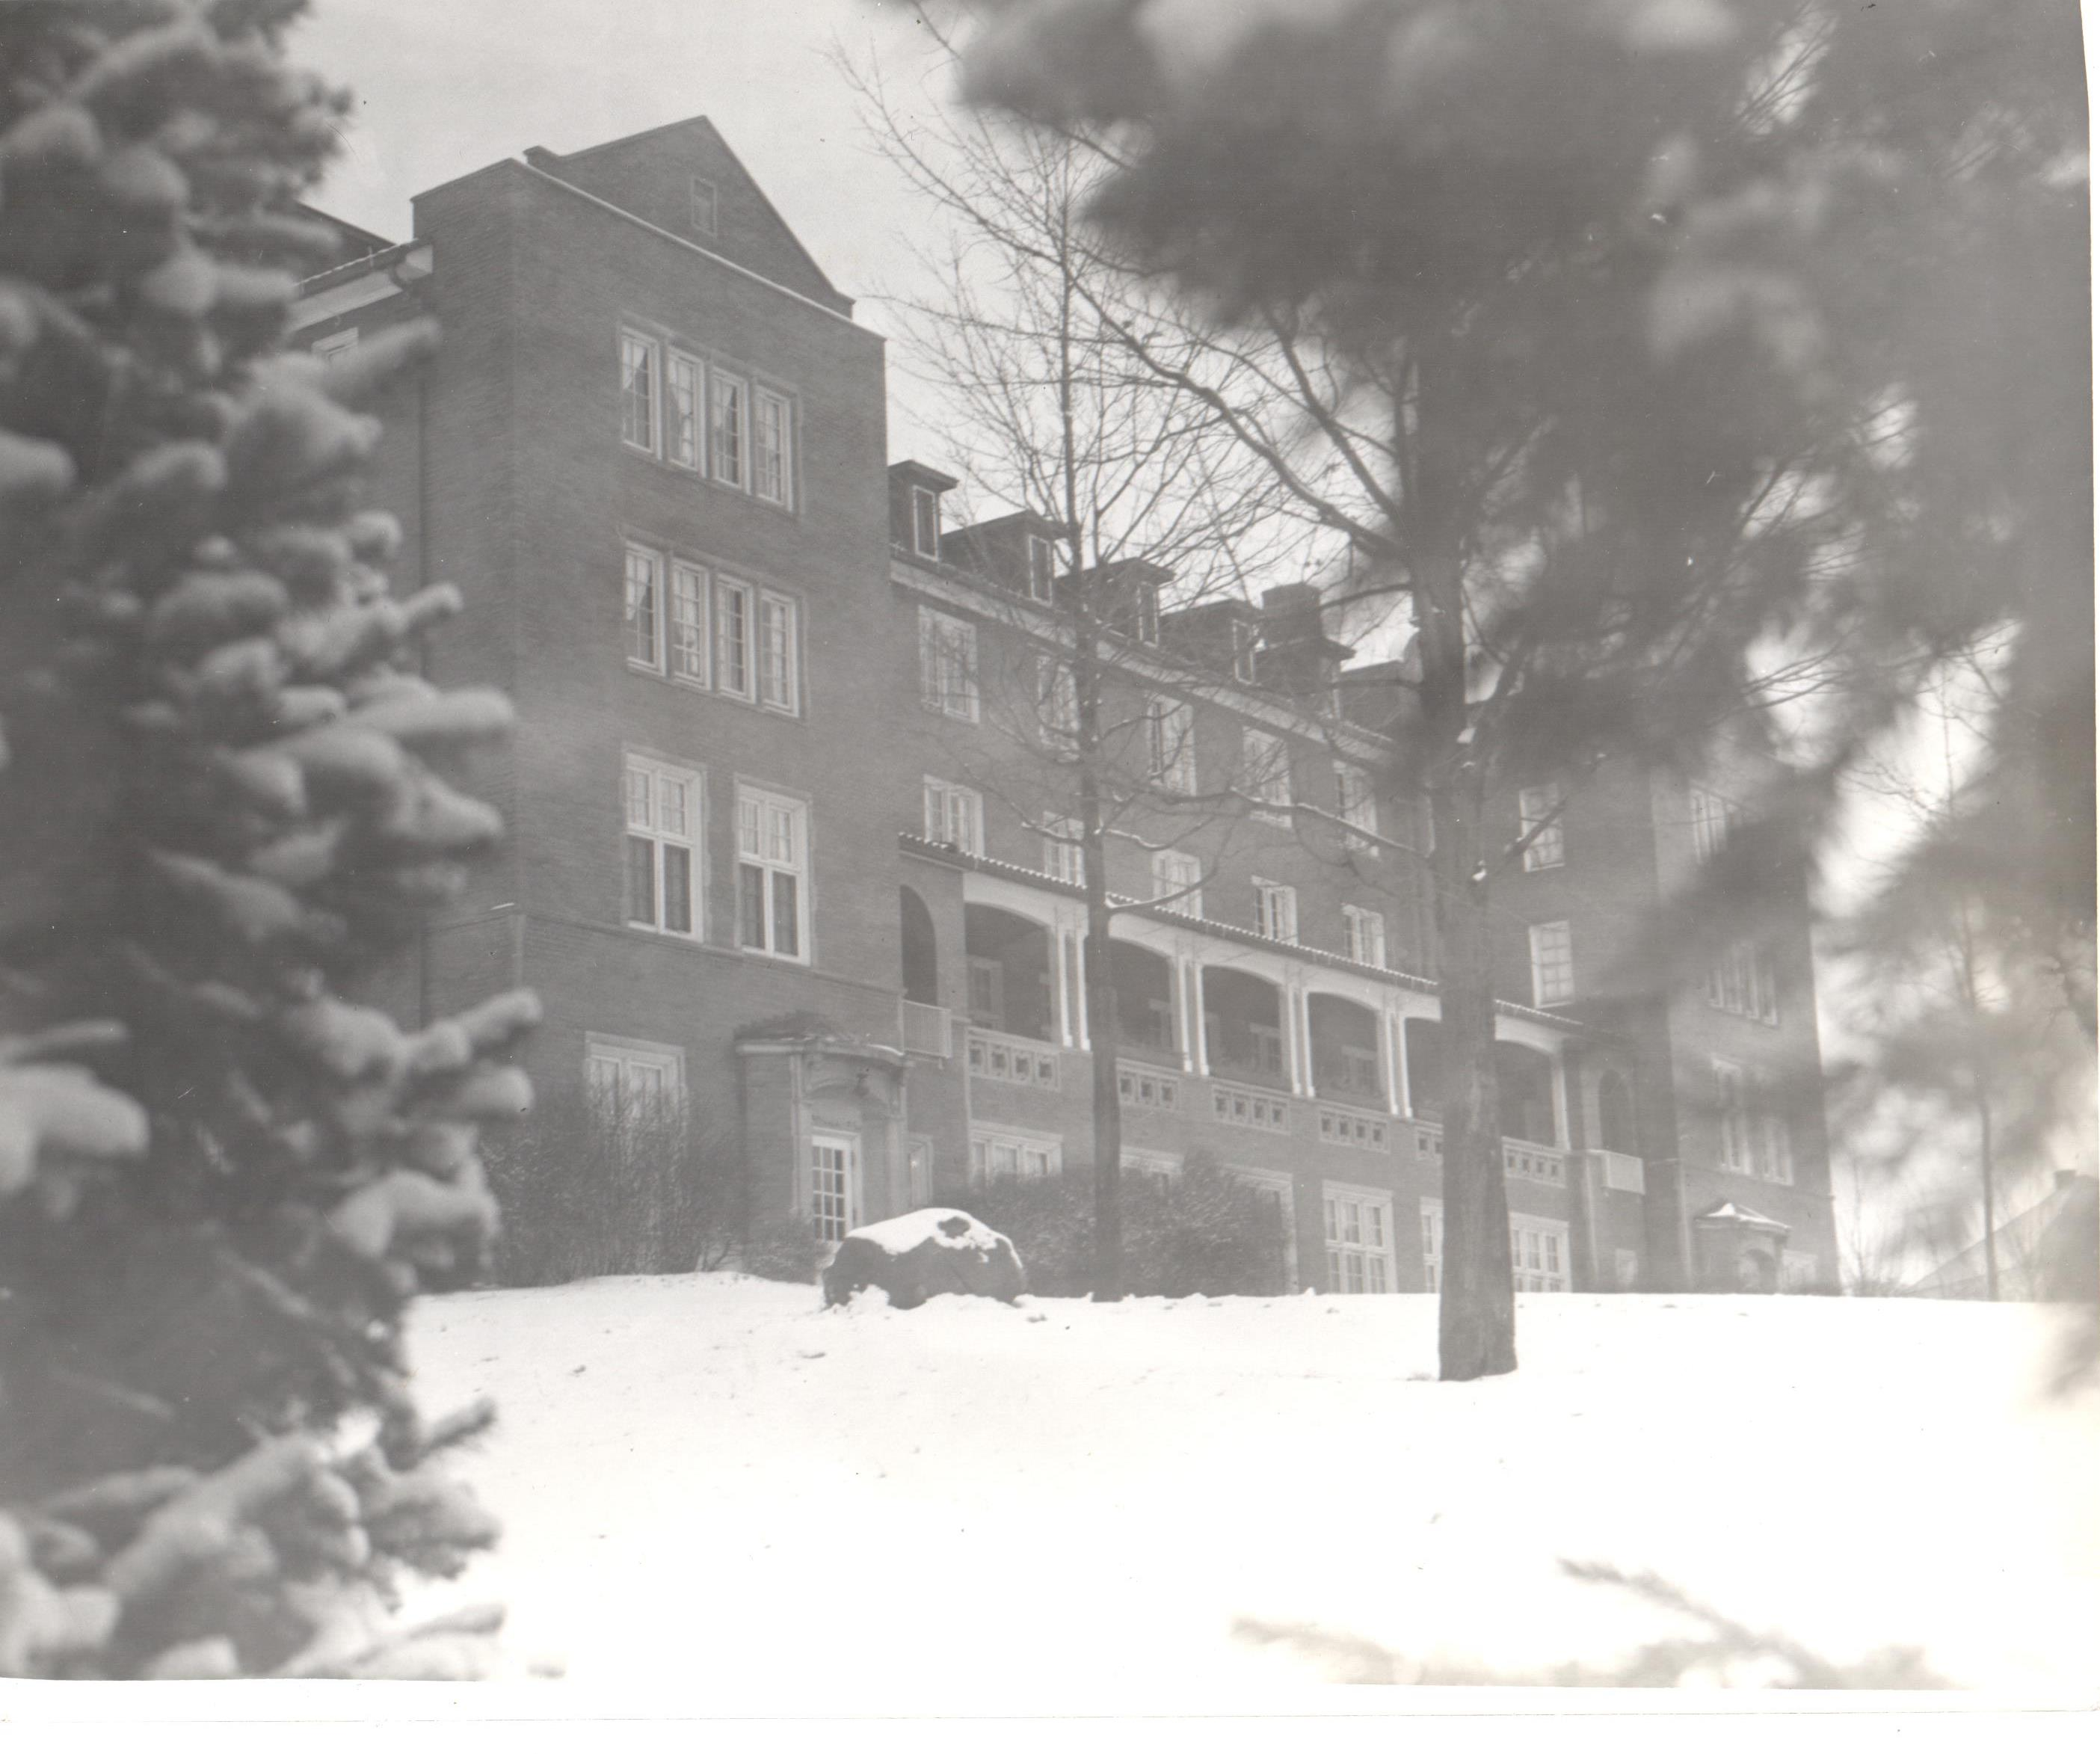 View of Patton Hall in the winter months